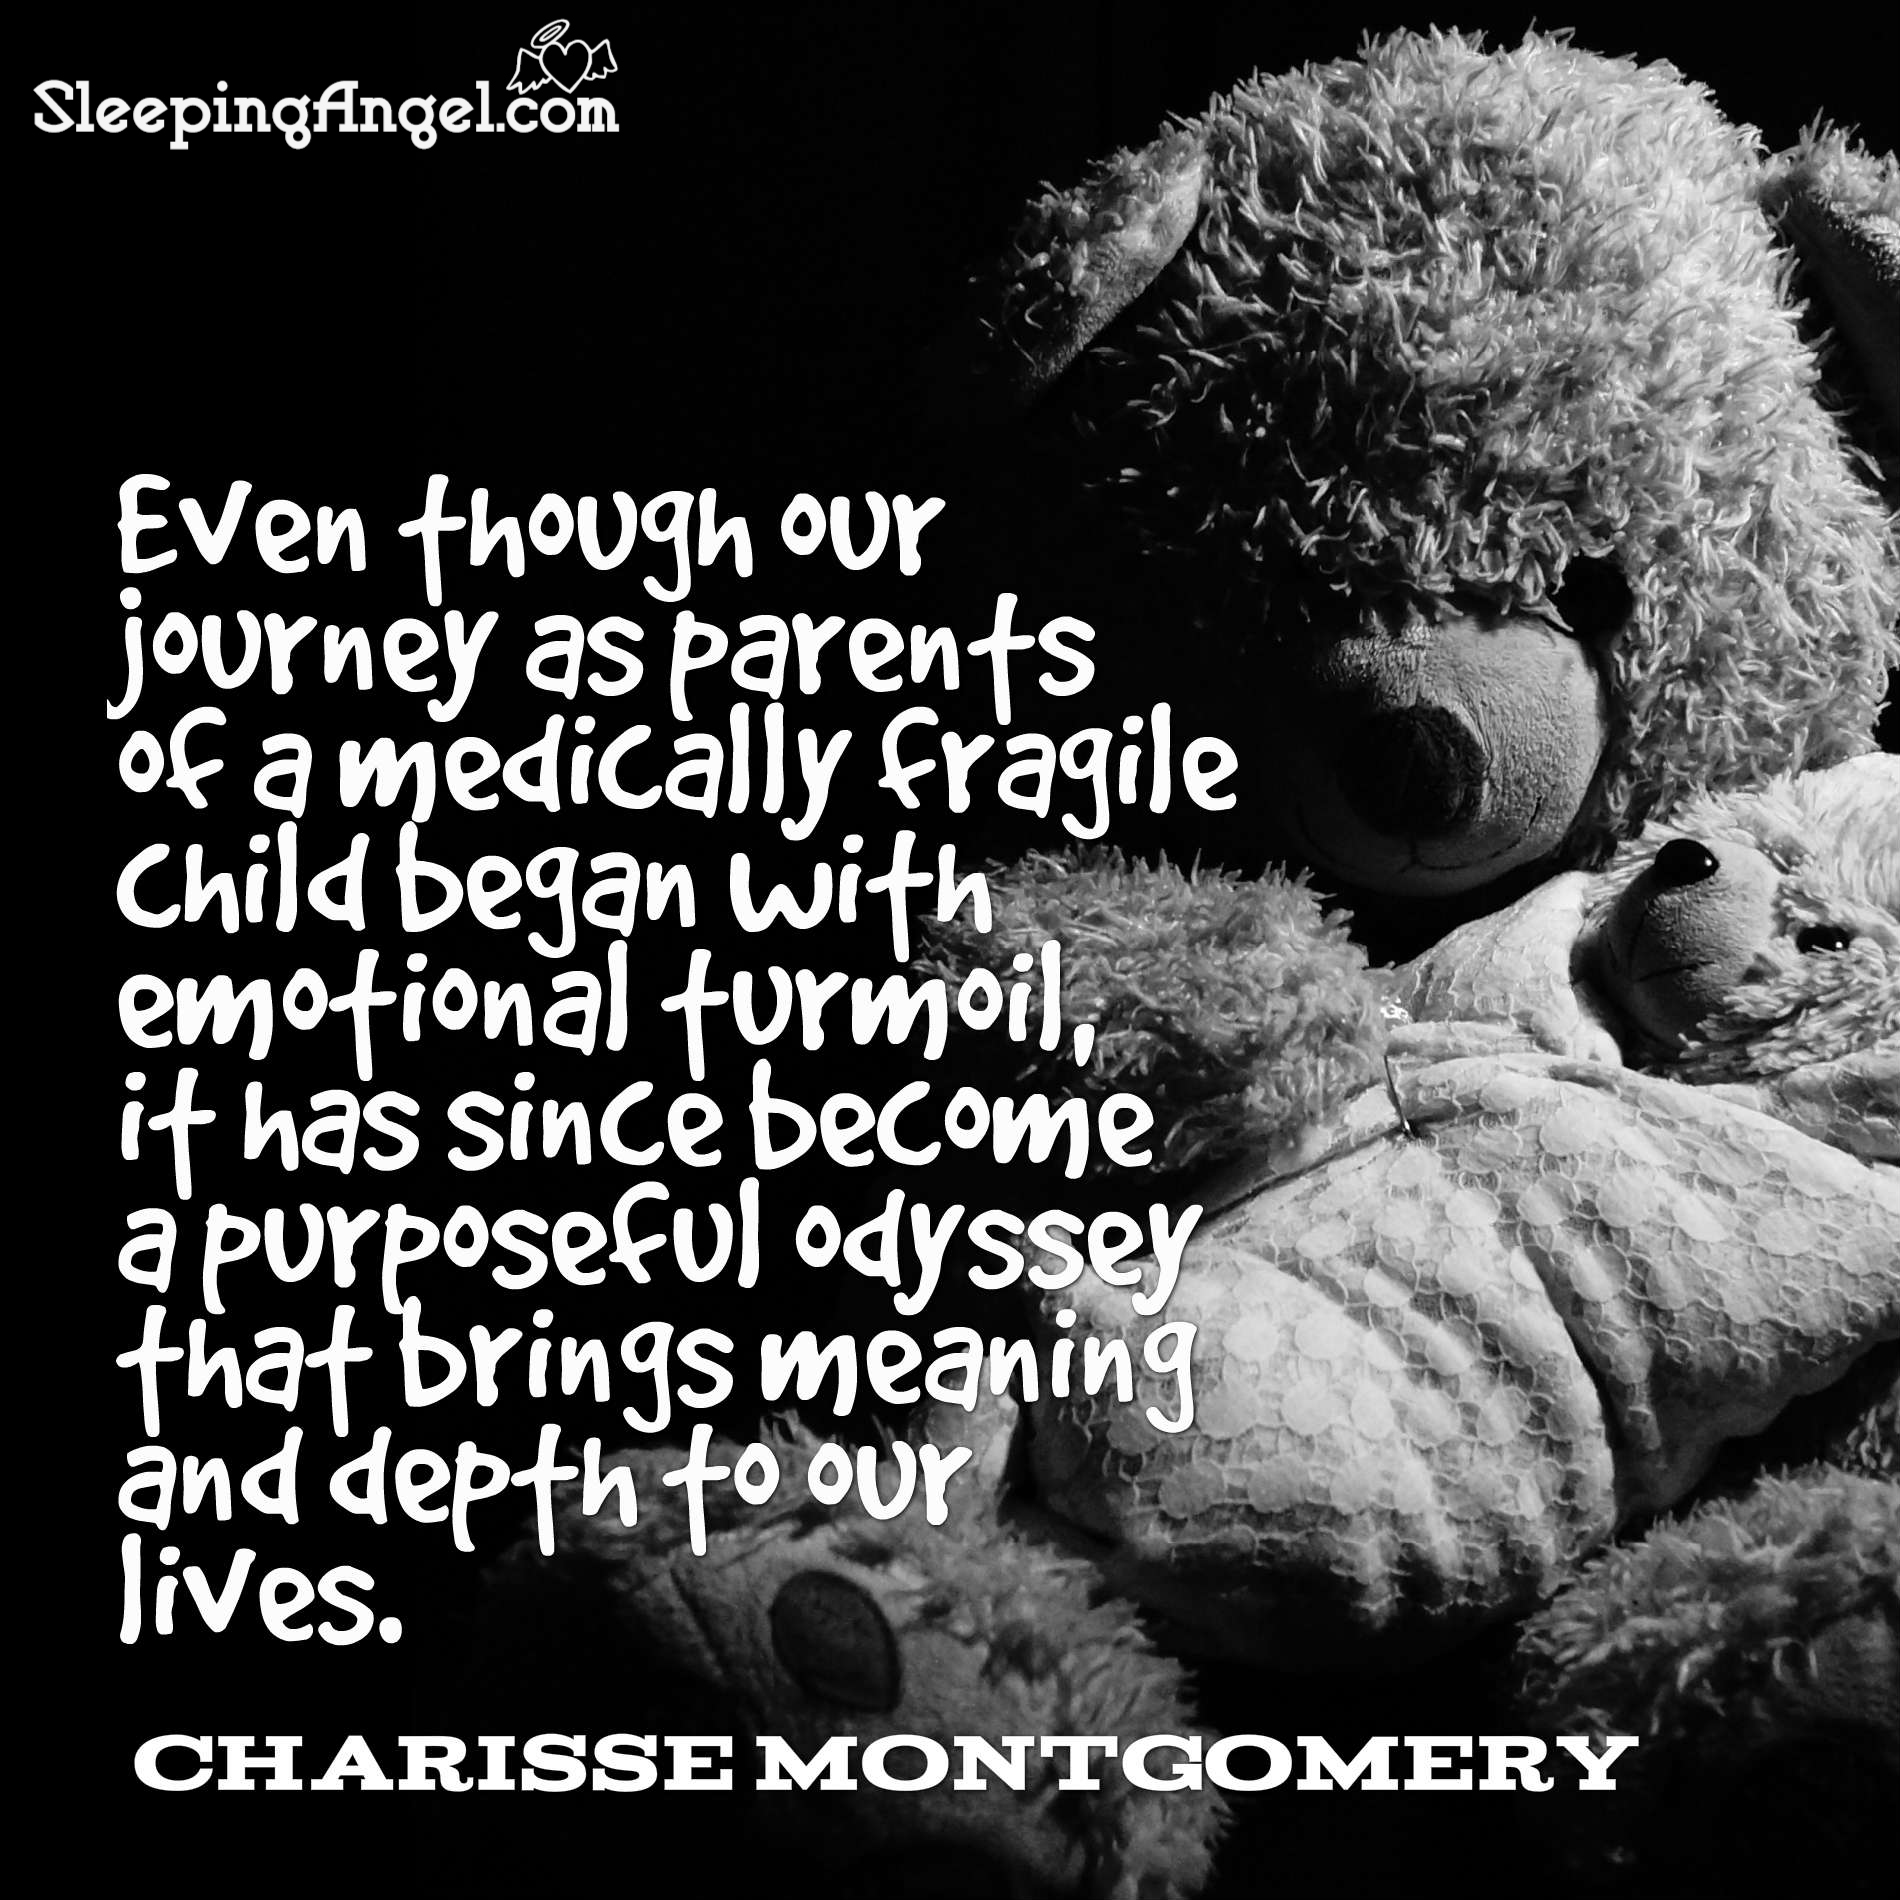 Parenting a Medically Fragile Child Quote